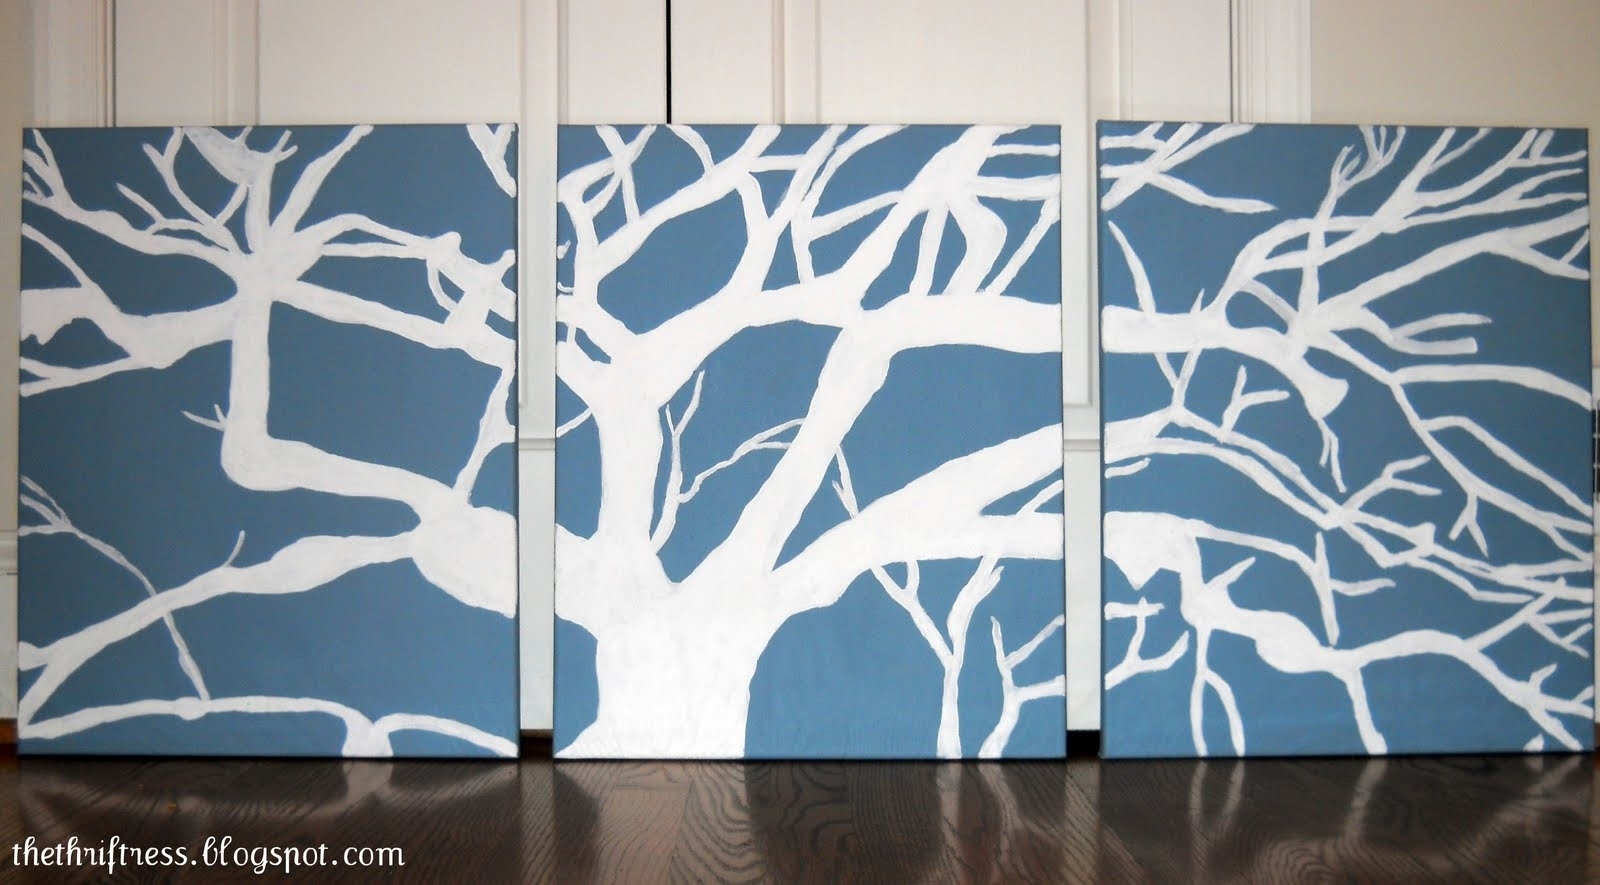 Diy Wall Art Stencils Paint Fabric - Dma Homes | #37854 throughout Newest Homemade Wall Art With Fabric